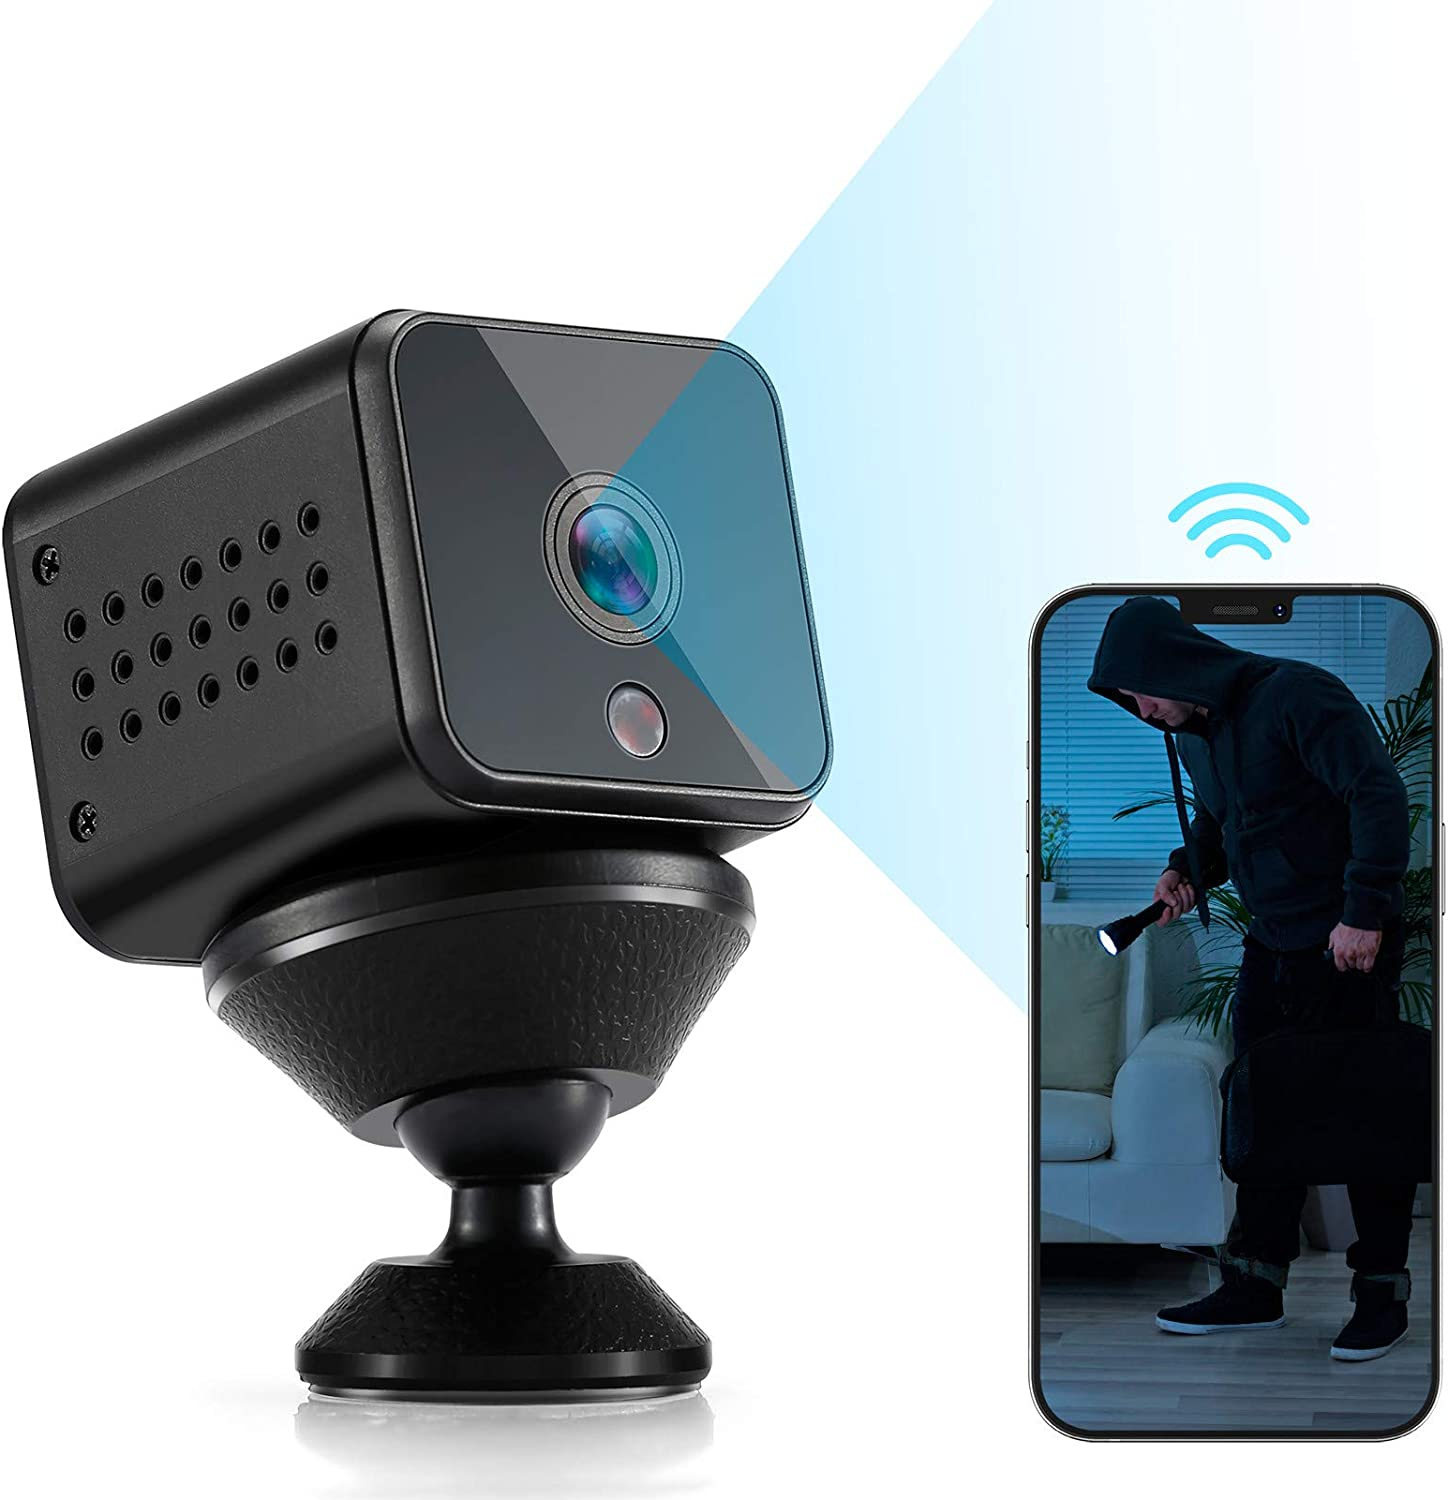 Spy Camera Mini WiFi Hidden Camera HAOHUNT HD 1080P with Audio Motion Detection Night Vision Nanny Surveillance Camera for Home Indoor Outdoor Security Camera with Built-in Battery, 32GB Micro SD Card